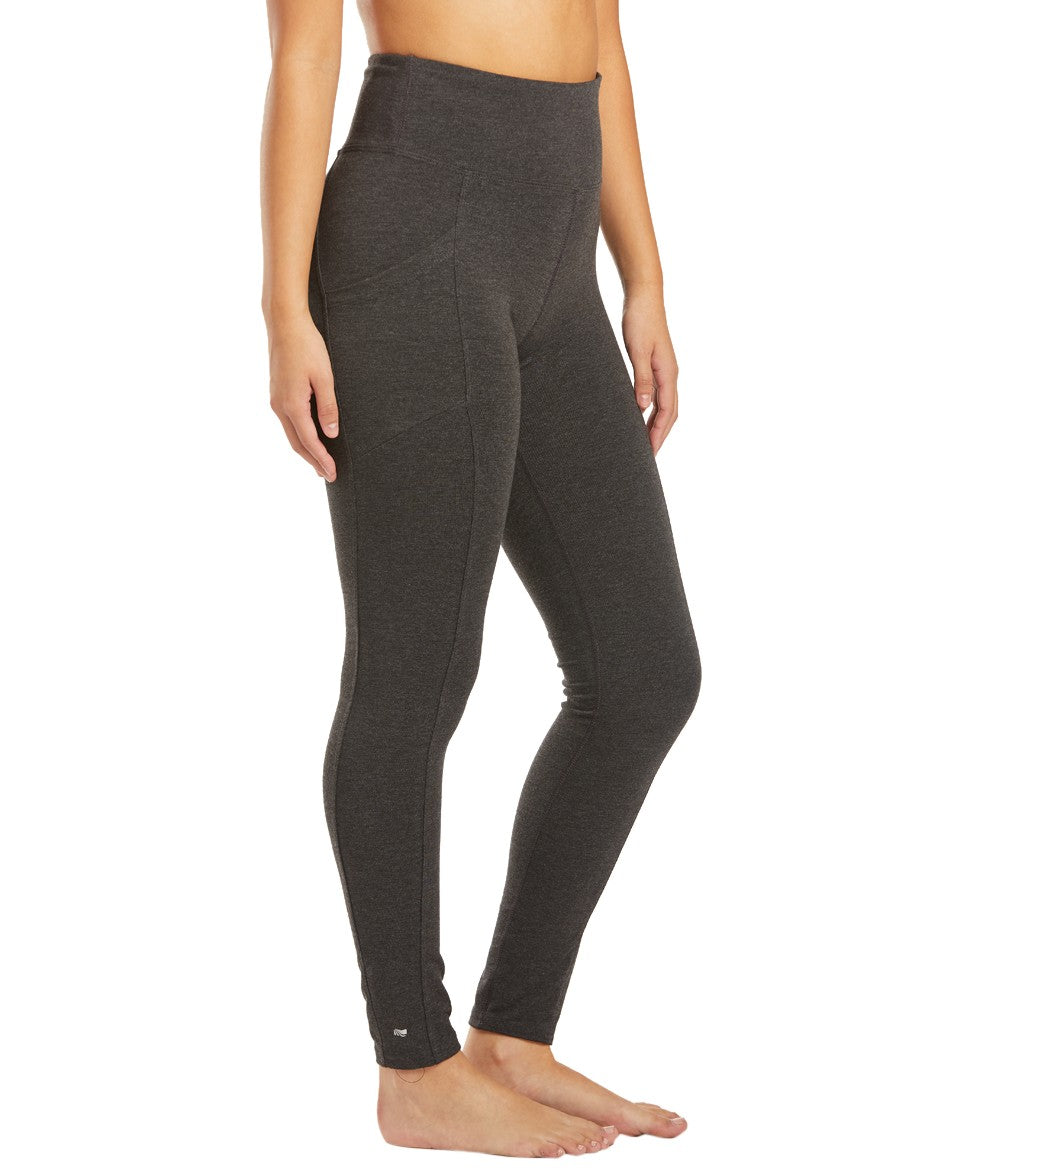 Marika Dana High Rise Tummy Control Yoga Leggings with Pockets - Heather Charcol Cotton